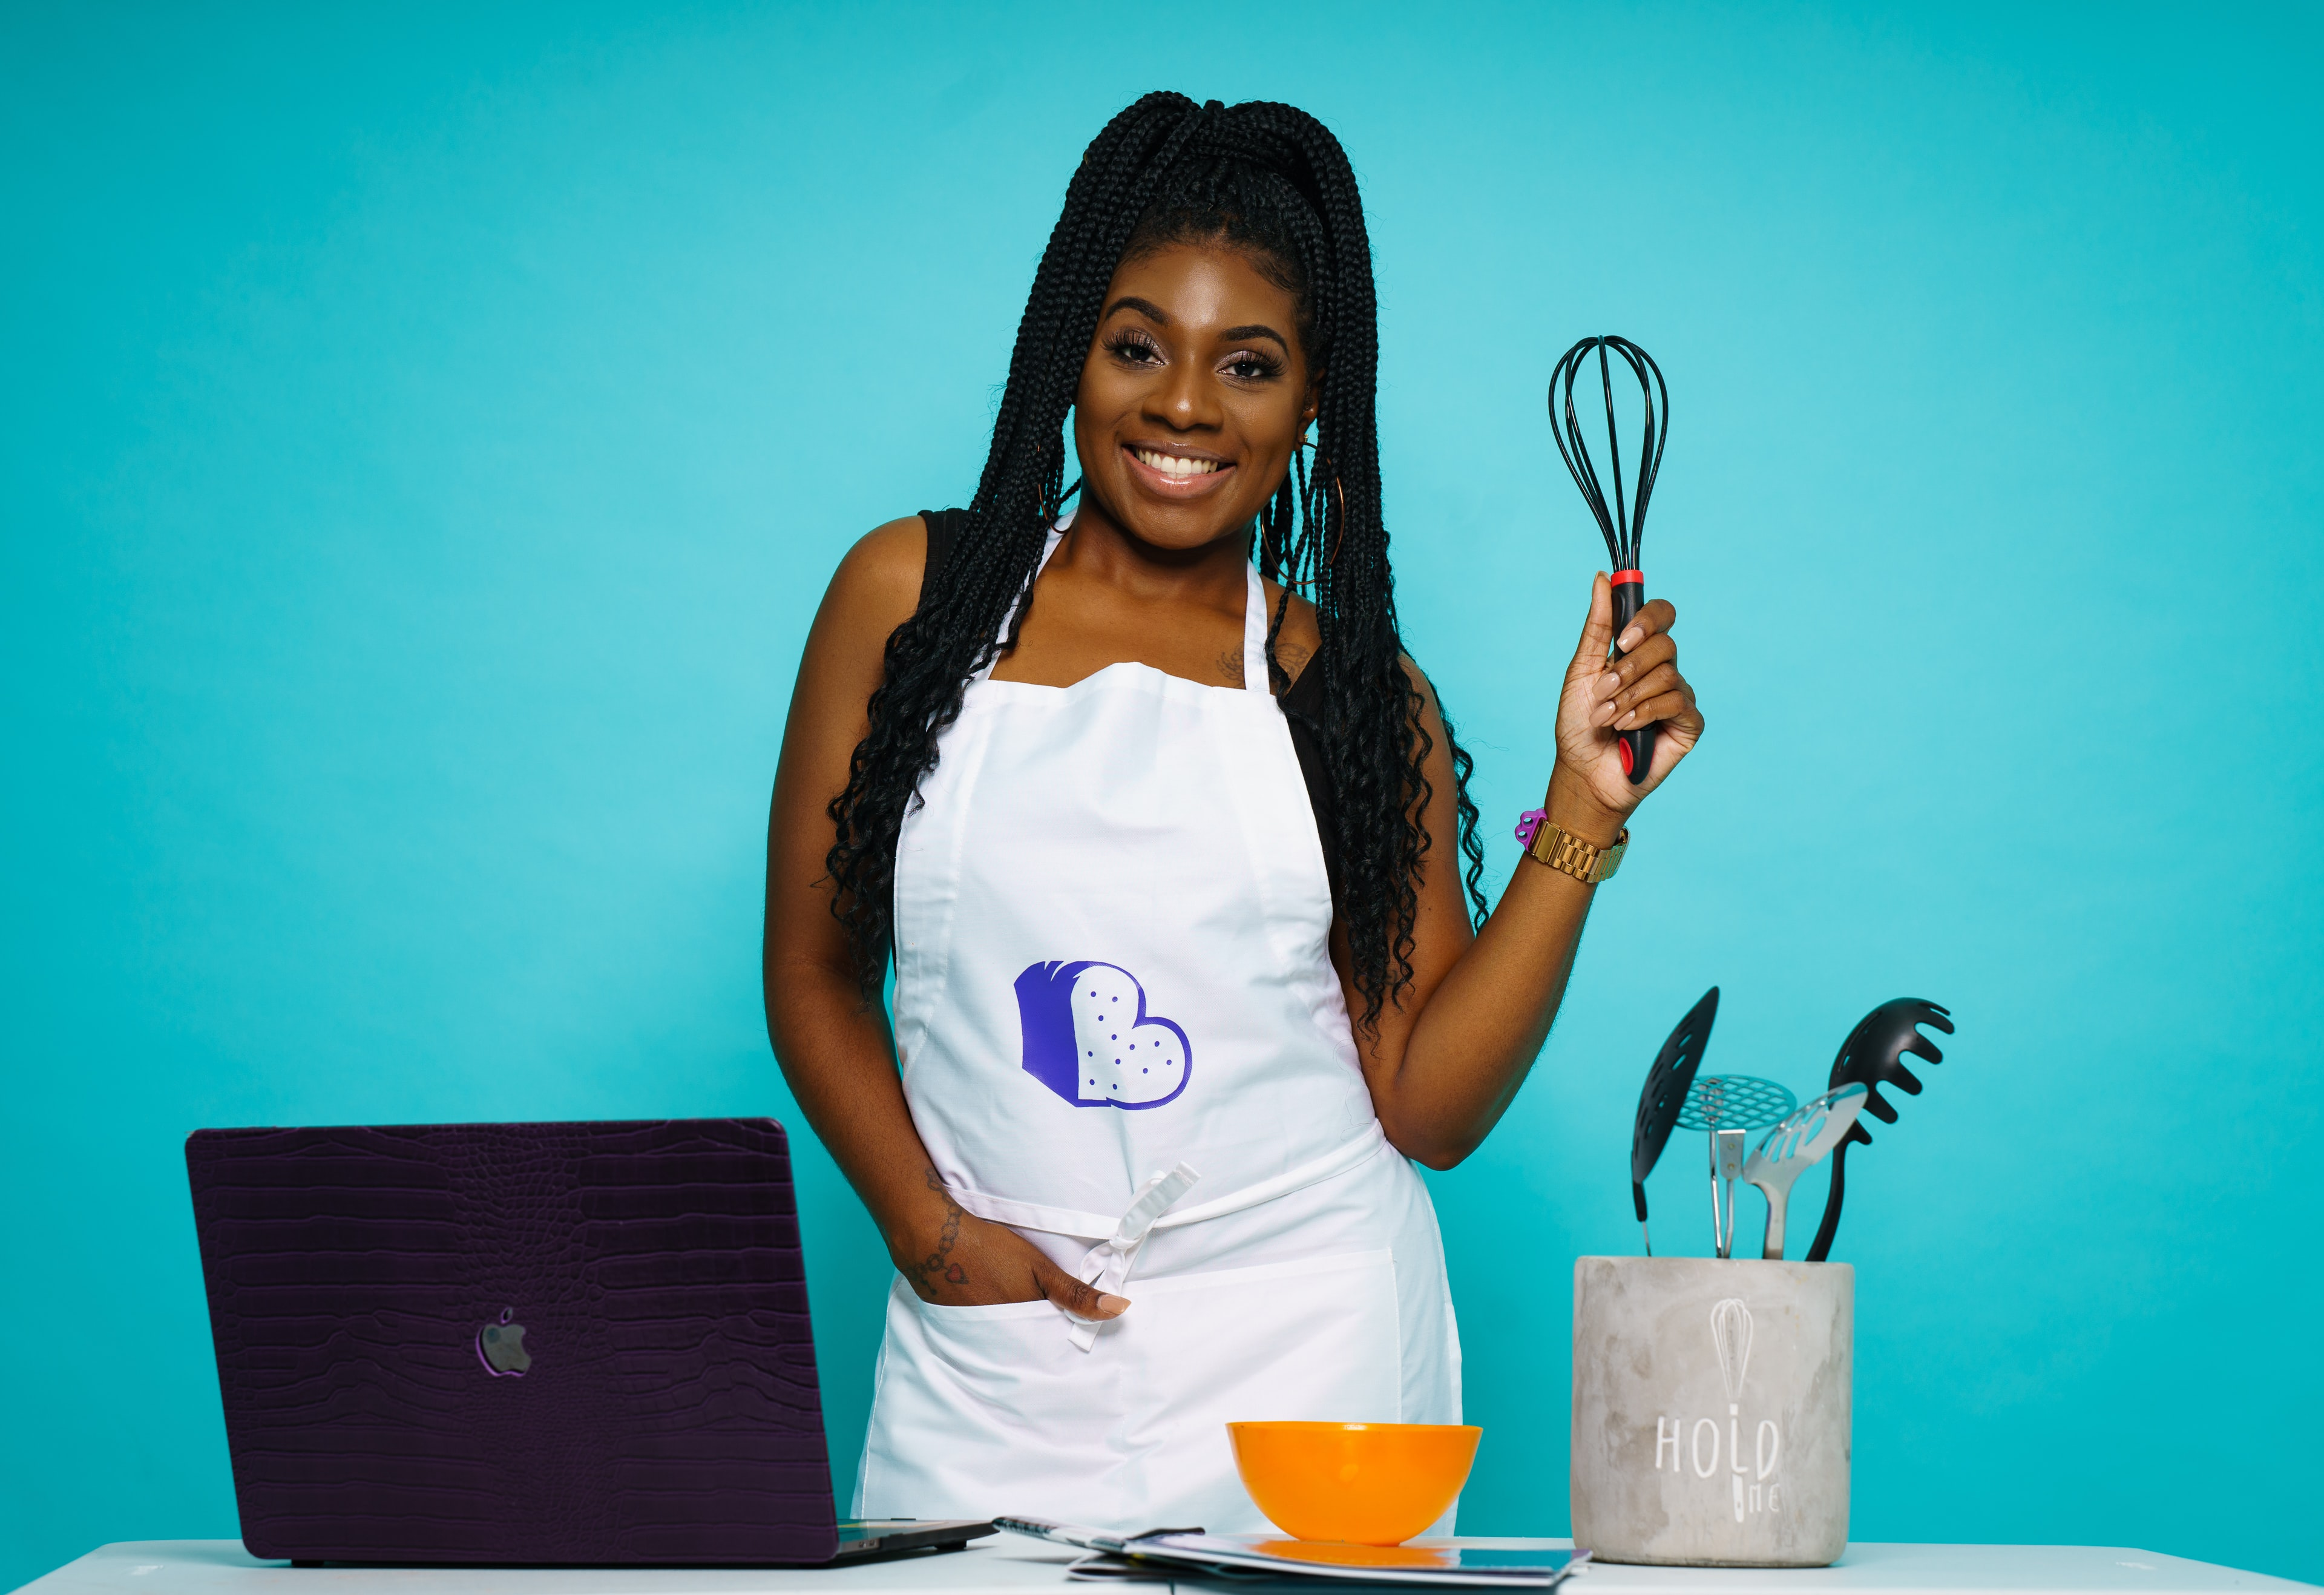 Woman wearing an apron, holding a whisk in front of a blue background